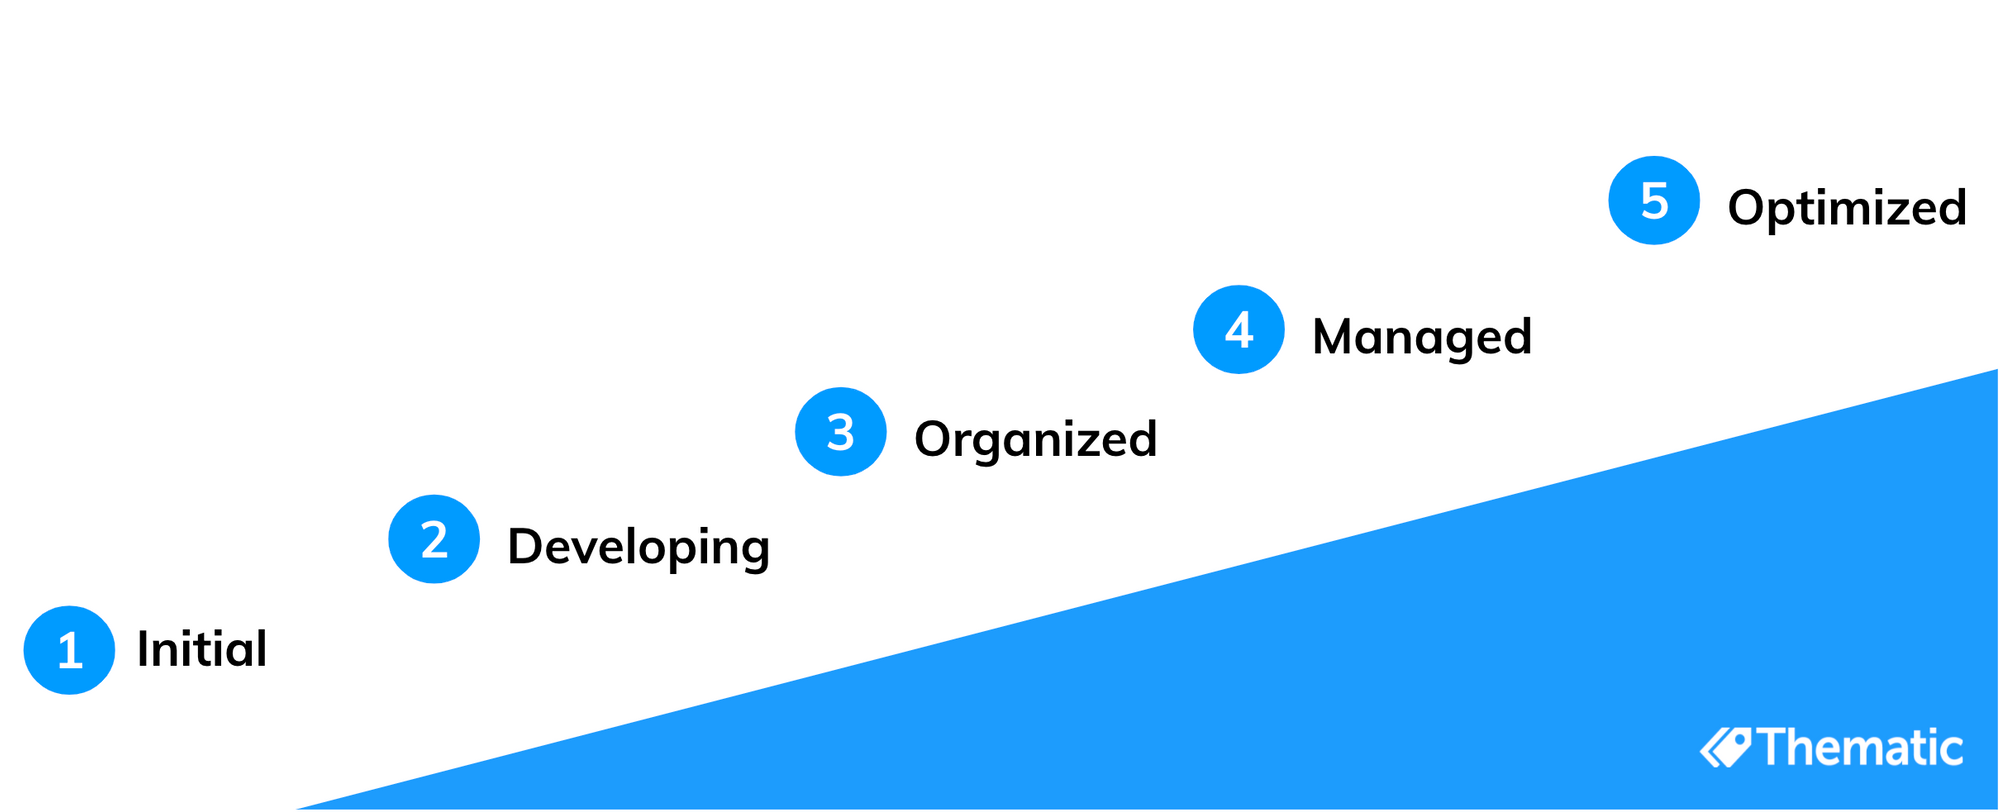 5 stages of the customer feedback analysis maturity model